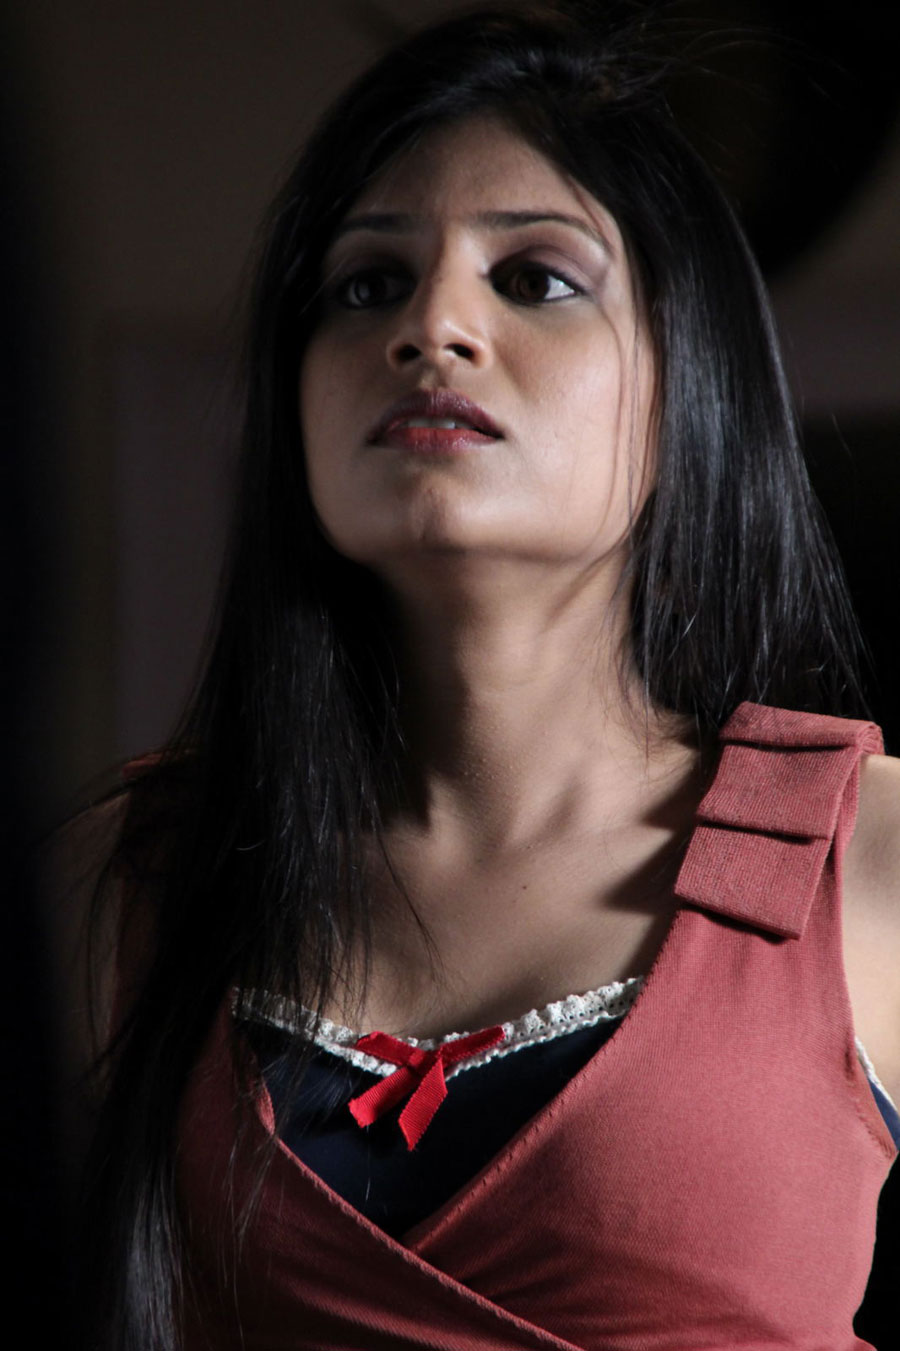 Shwetha Pandit from Theater Lo Movie Photo Gallery Swetha23